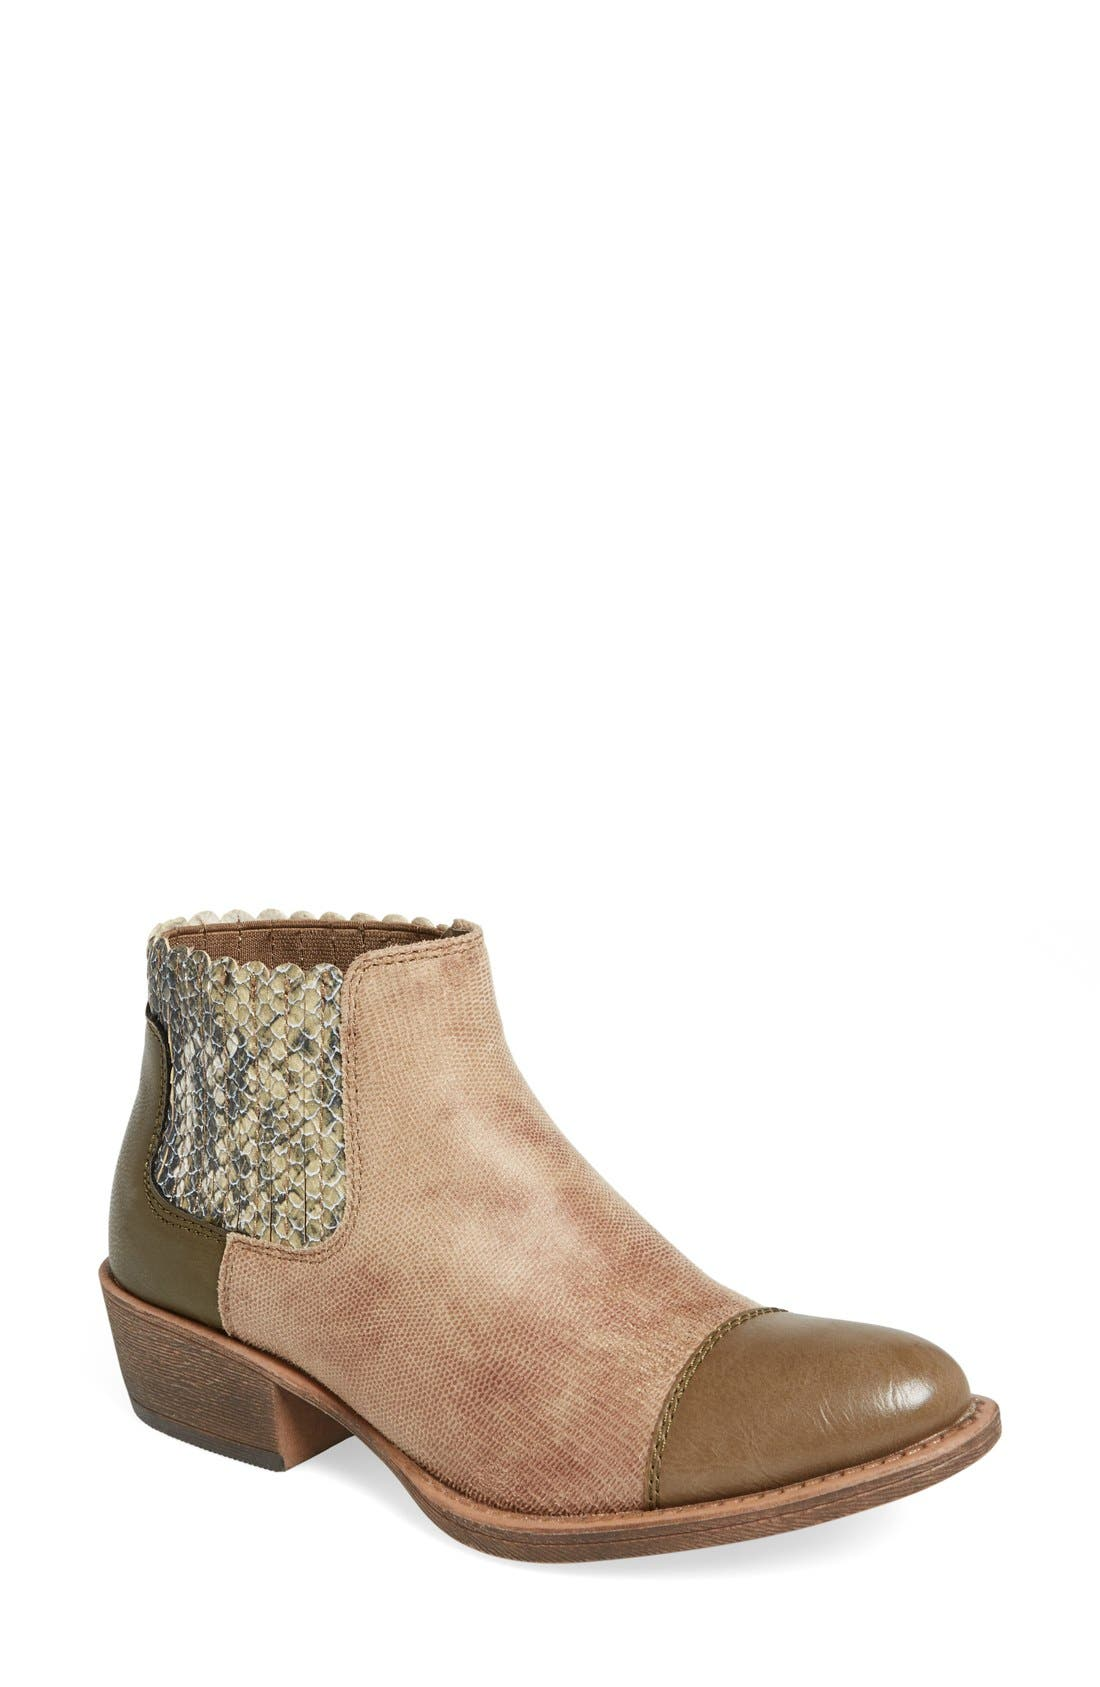 Alternate Image 1 Selected - Coconuts by Matisse 'Blackjack' Ankle Boot (Women)